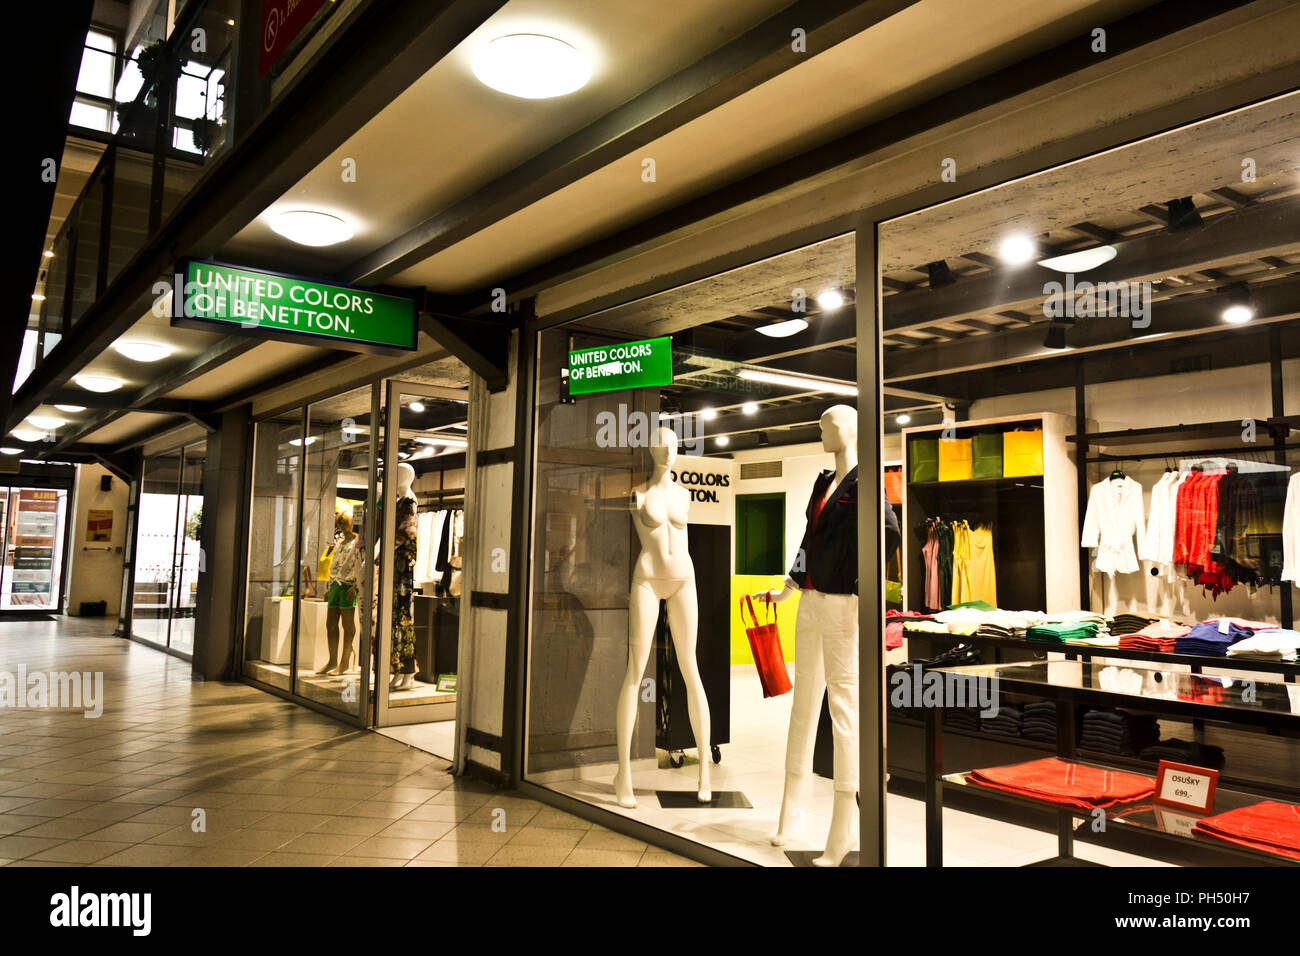 United colors of Benetton fashion shop in a mall in Prague, Czech republic - Stock Image